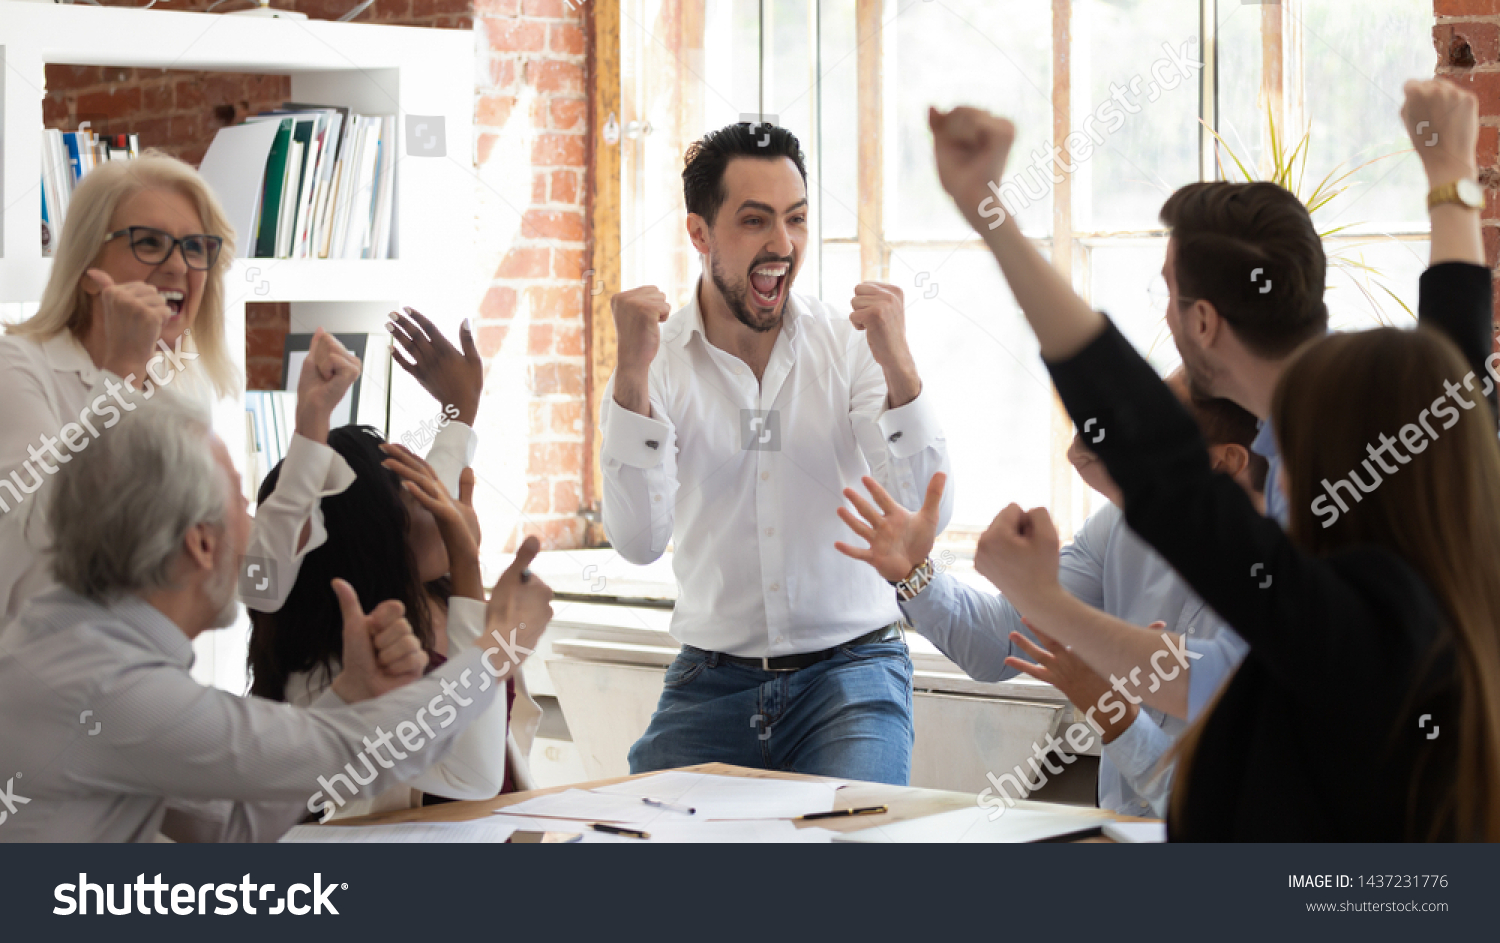 Euphoric excited business team celebrate corporate victory together in office, happy overjoyed professionals group rejoice company victory, teamwork success win triumph concept at conference table #1437231776